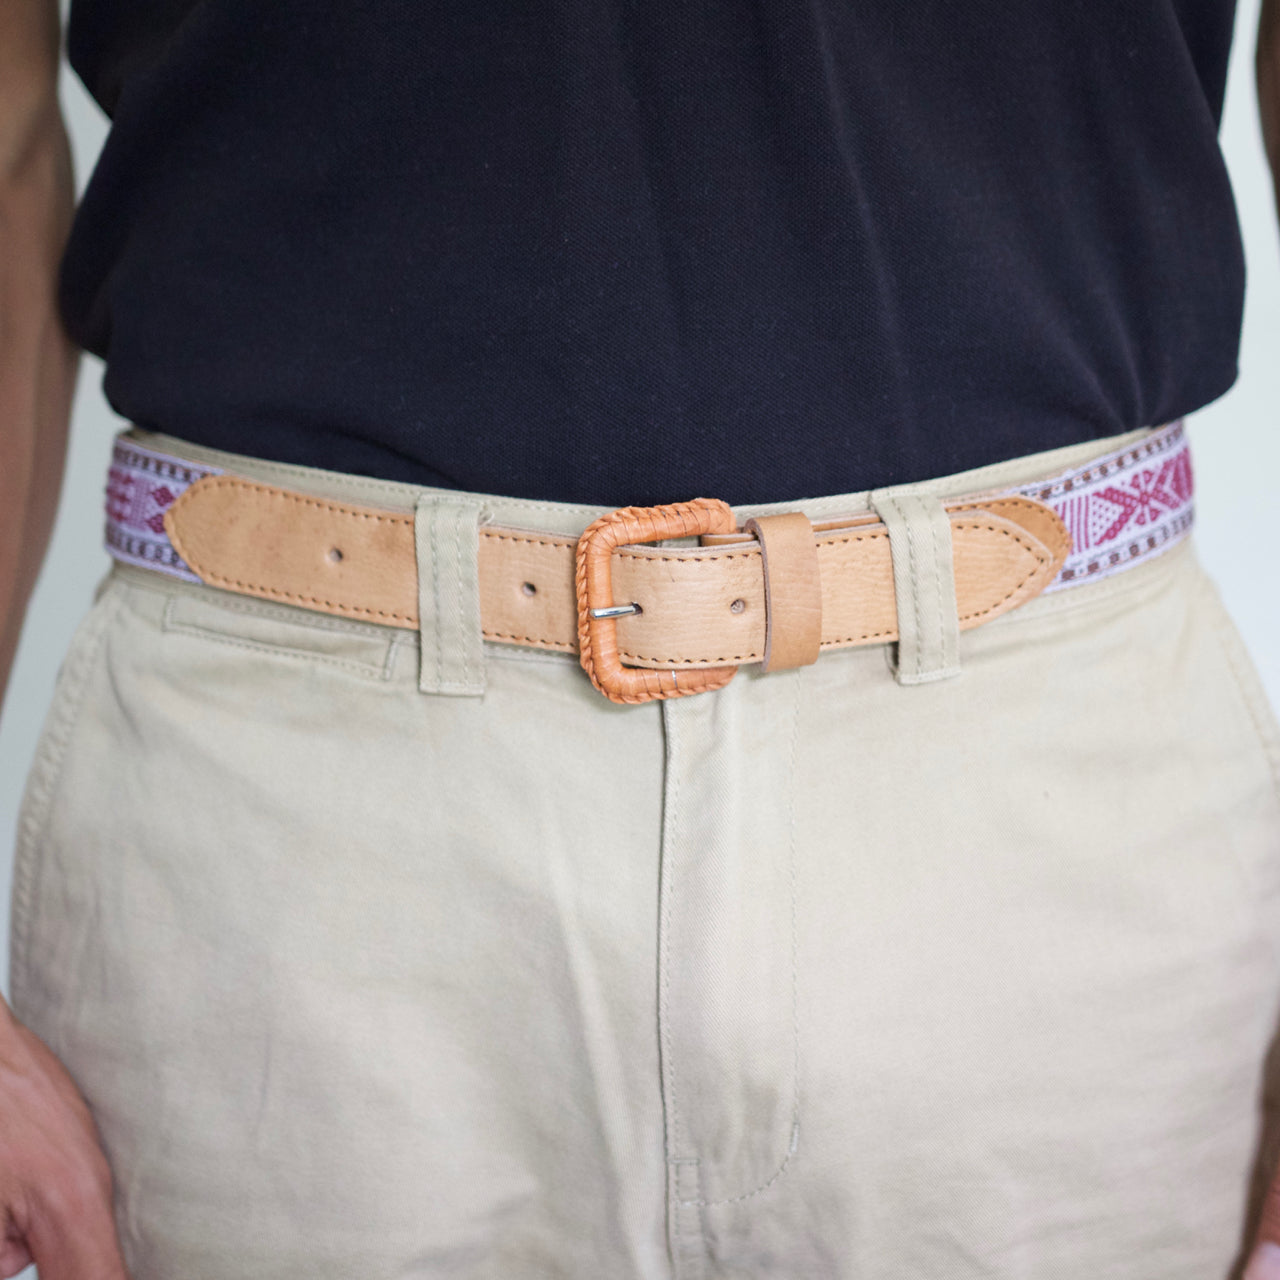 Santo Tomas Belt - Size 34 No. 13